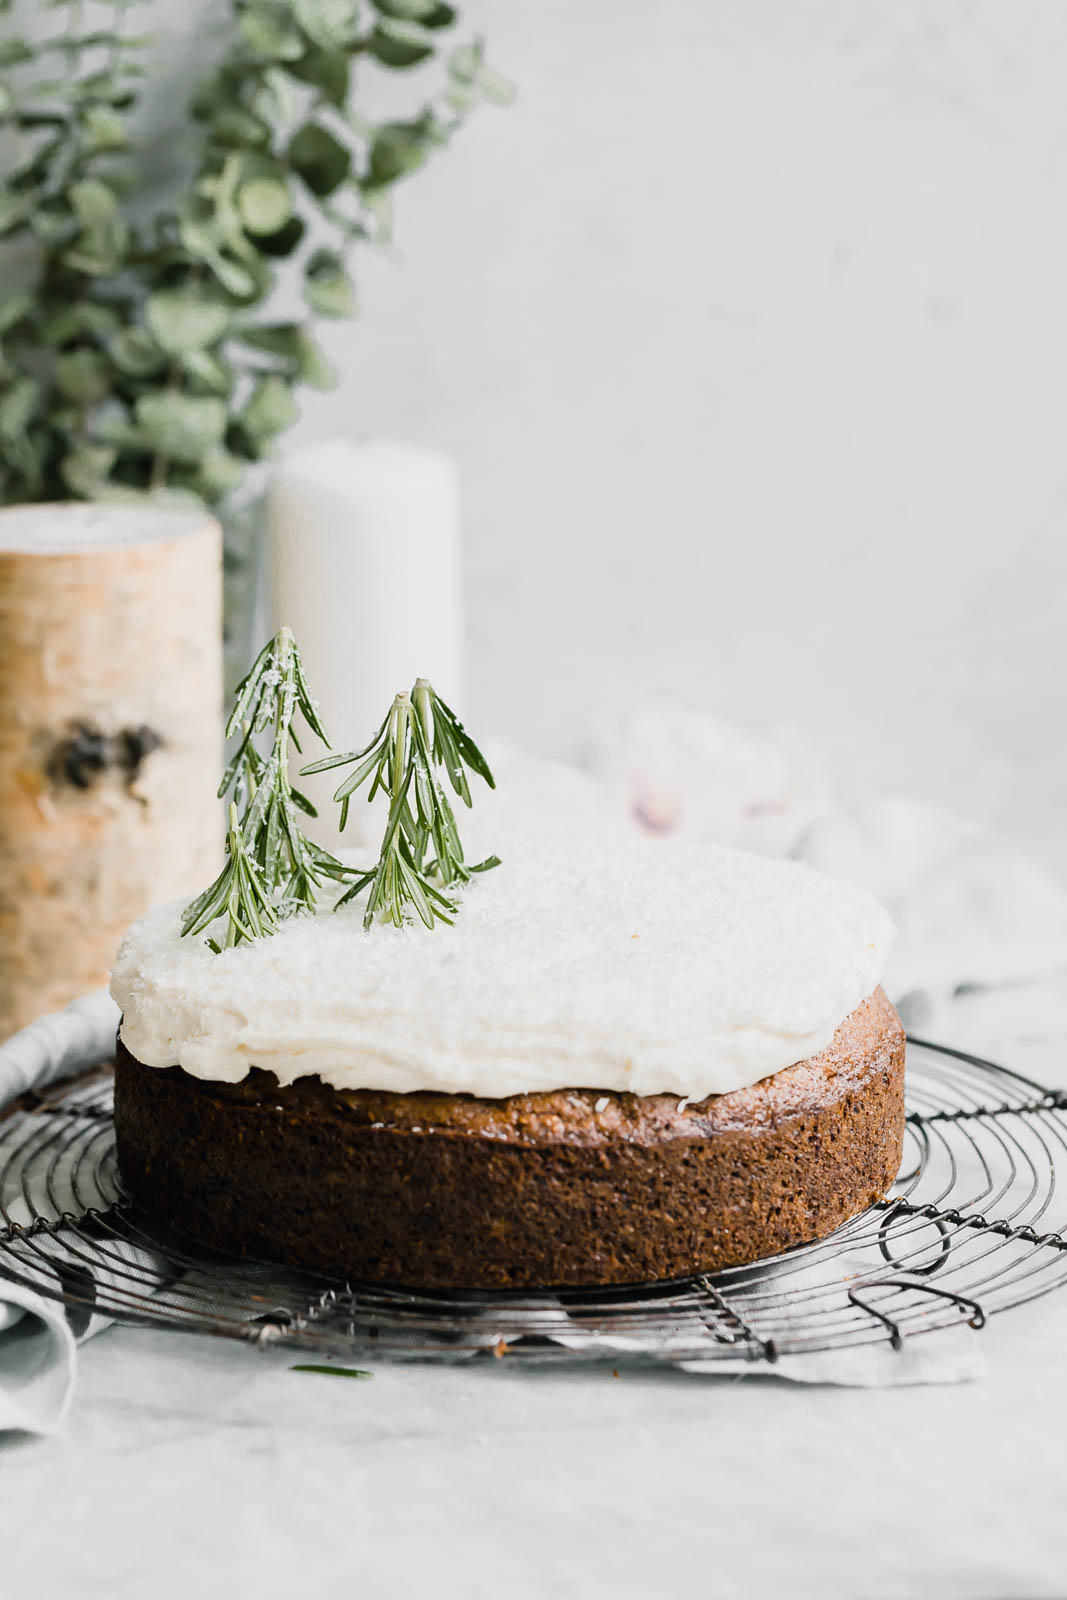 coconut carrot cake on wire rack